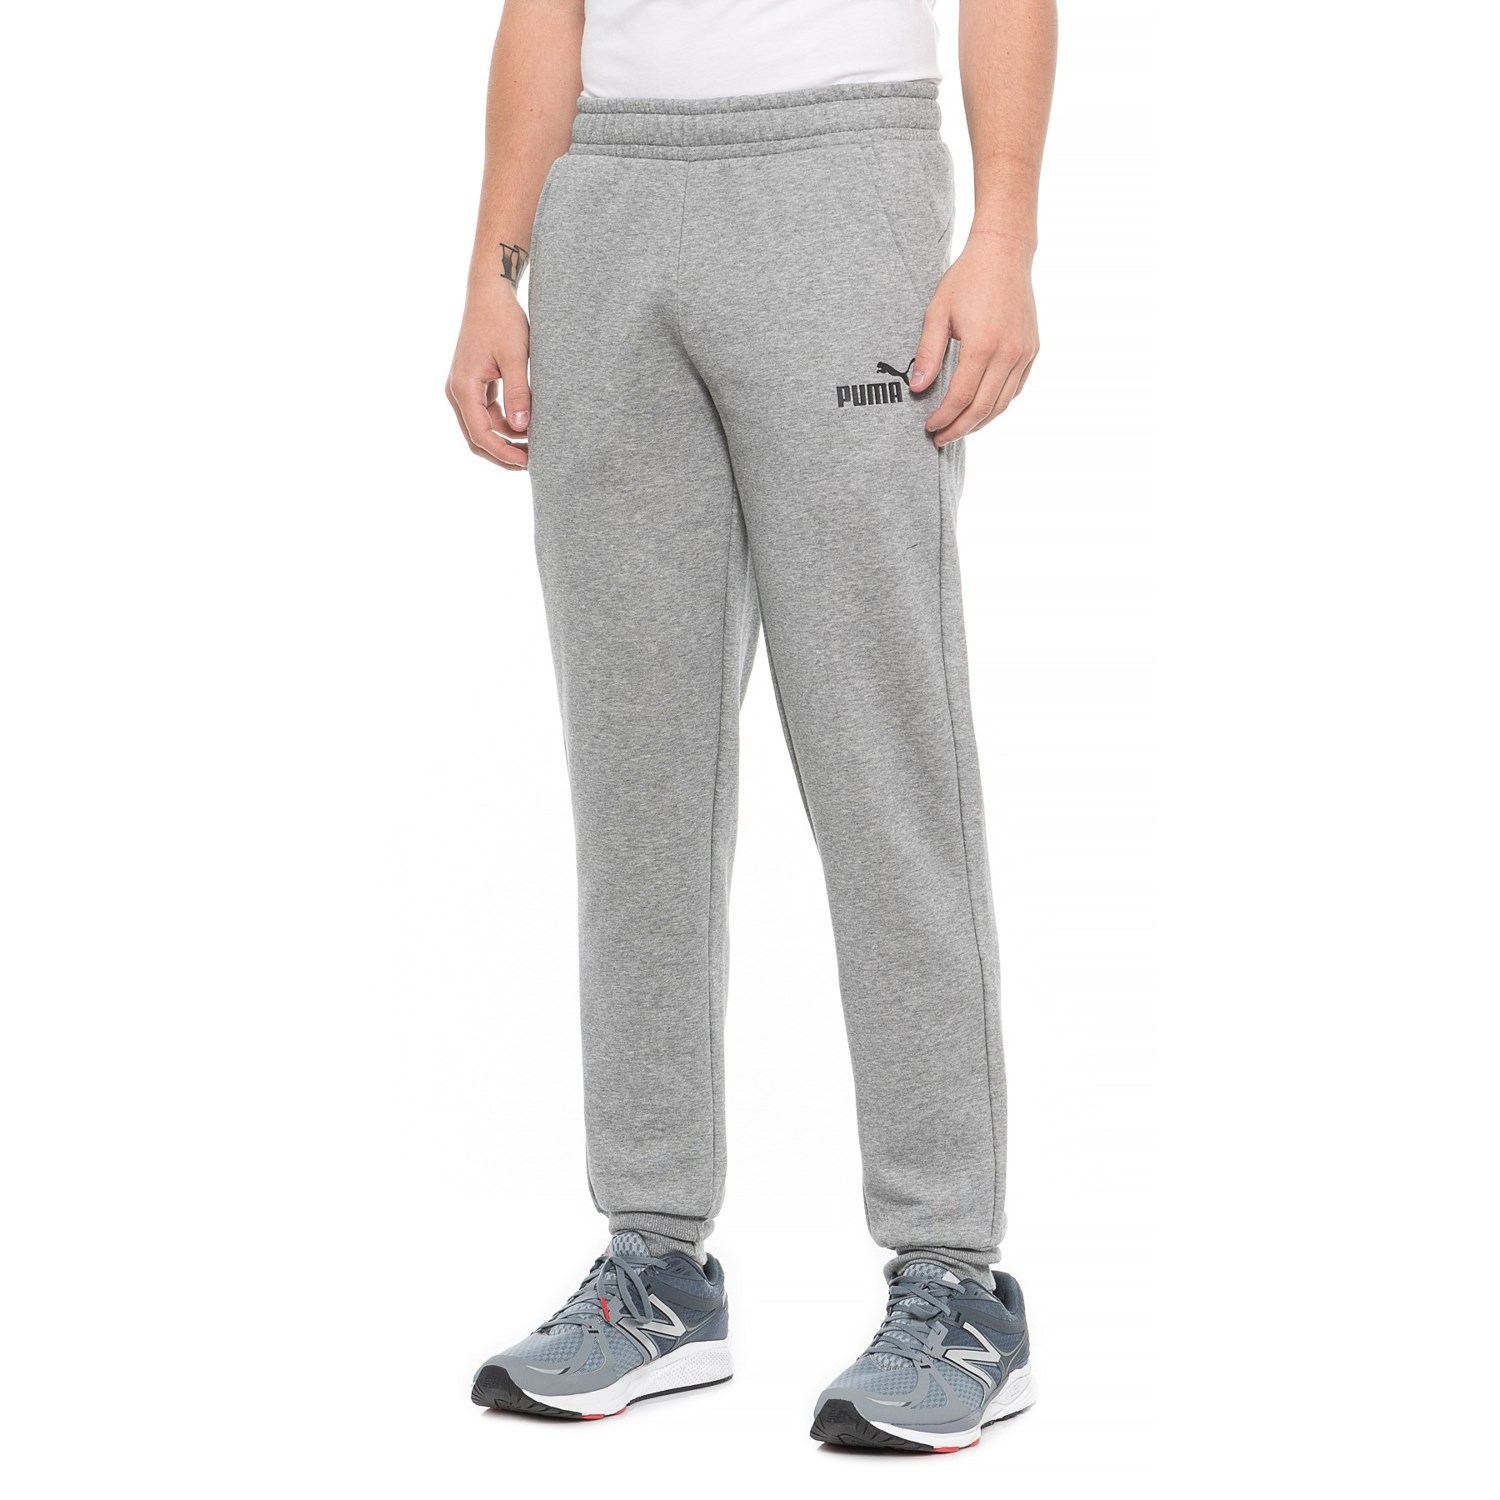 nouveau produit d336f 289d5 Puma Essential Fleece Joggers (For Men)